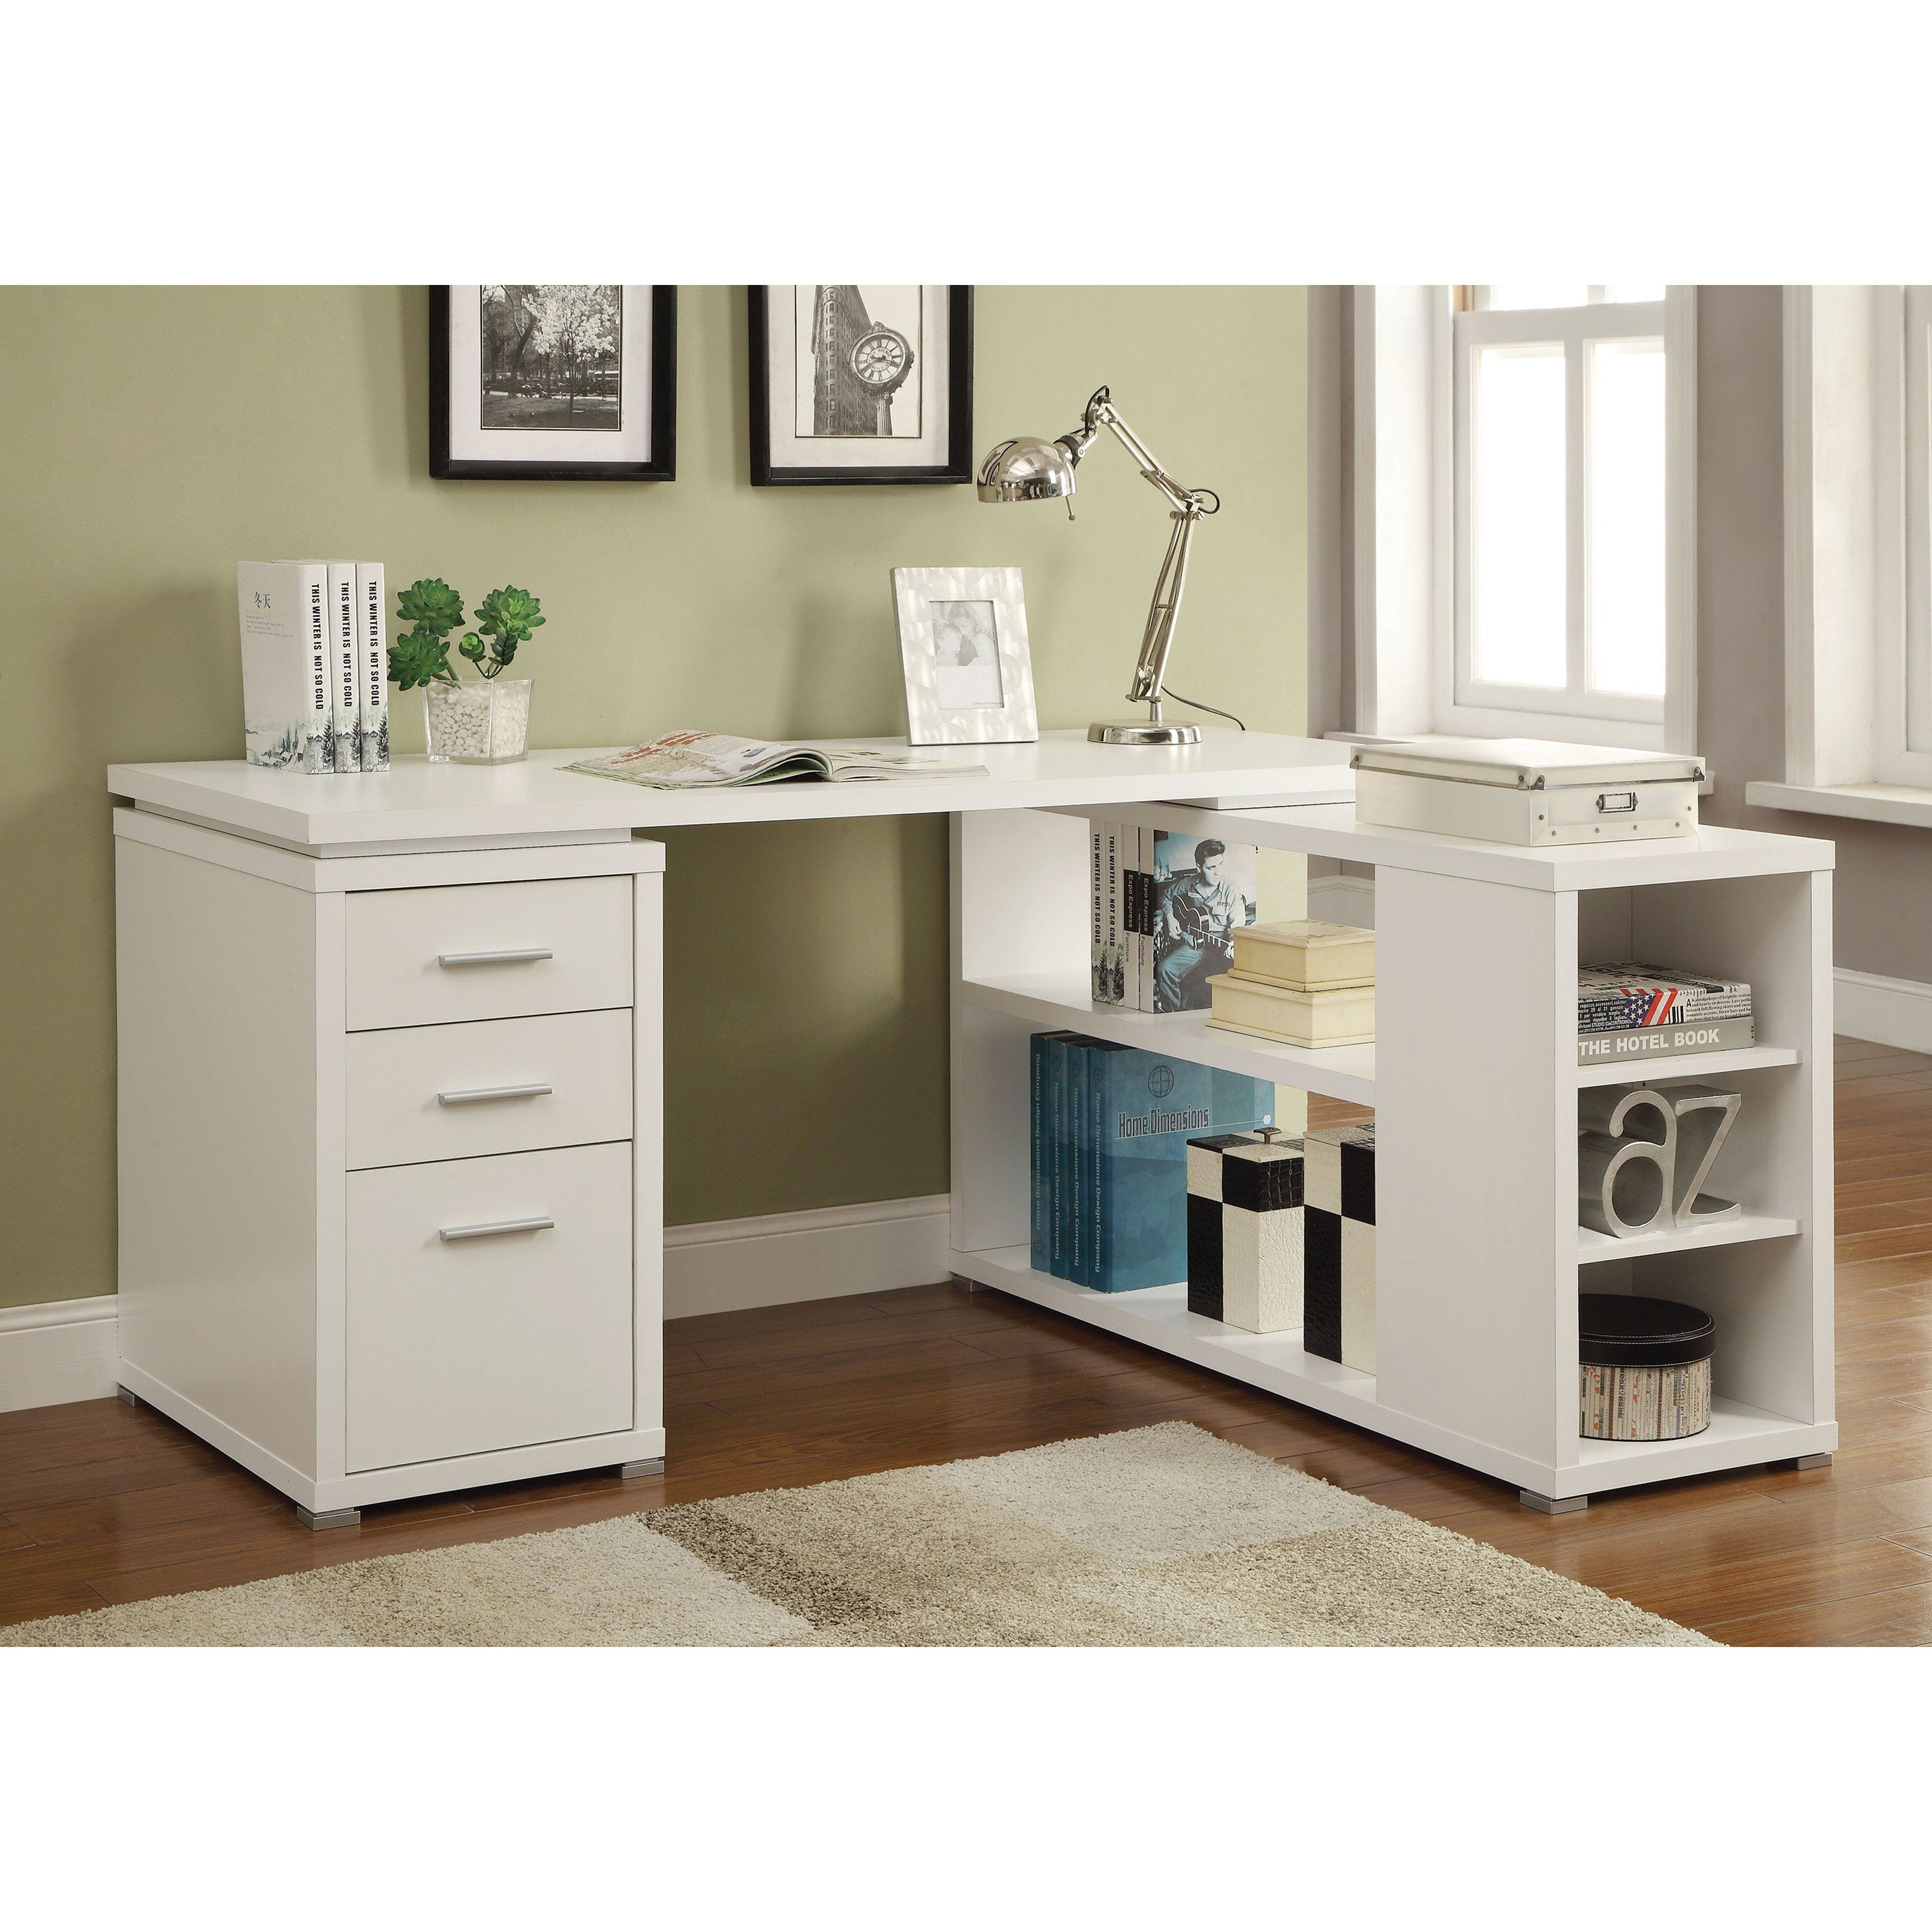 Coaster Furniture Yvette Office Desk From Hayneedle Com  # Muebles Coaster